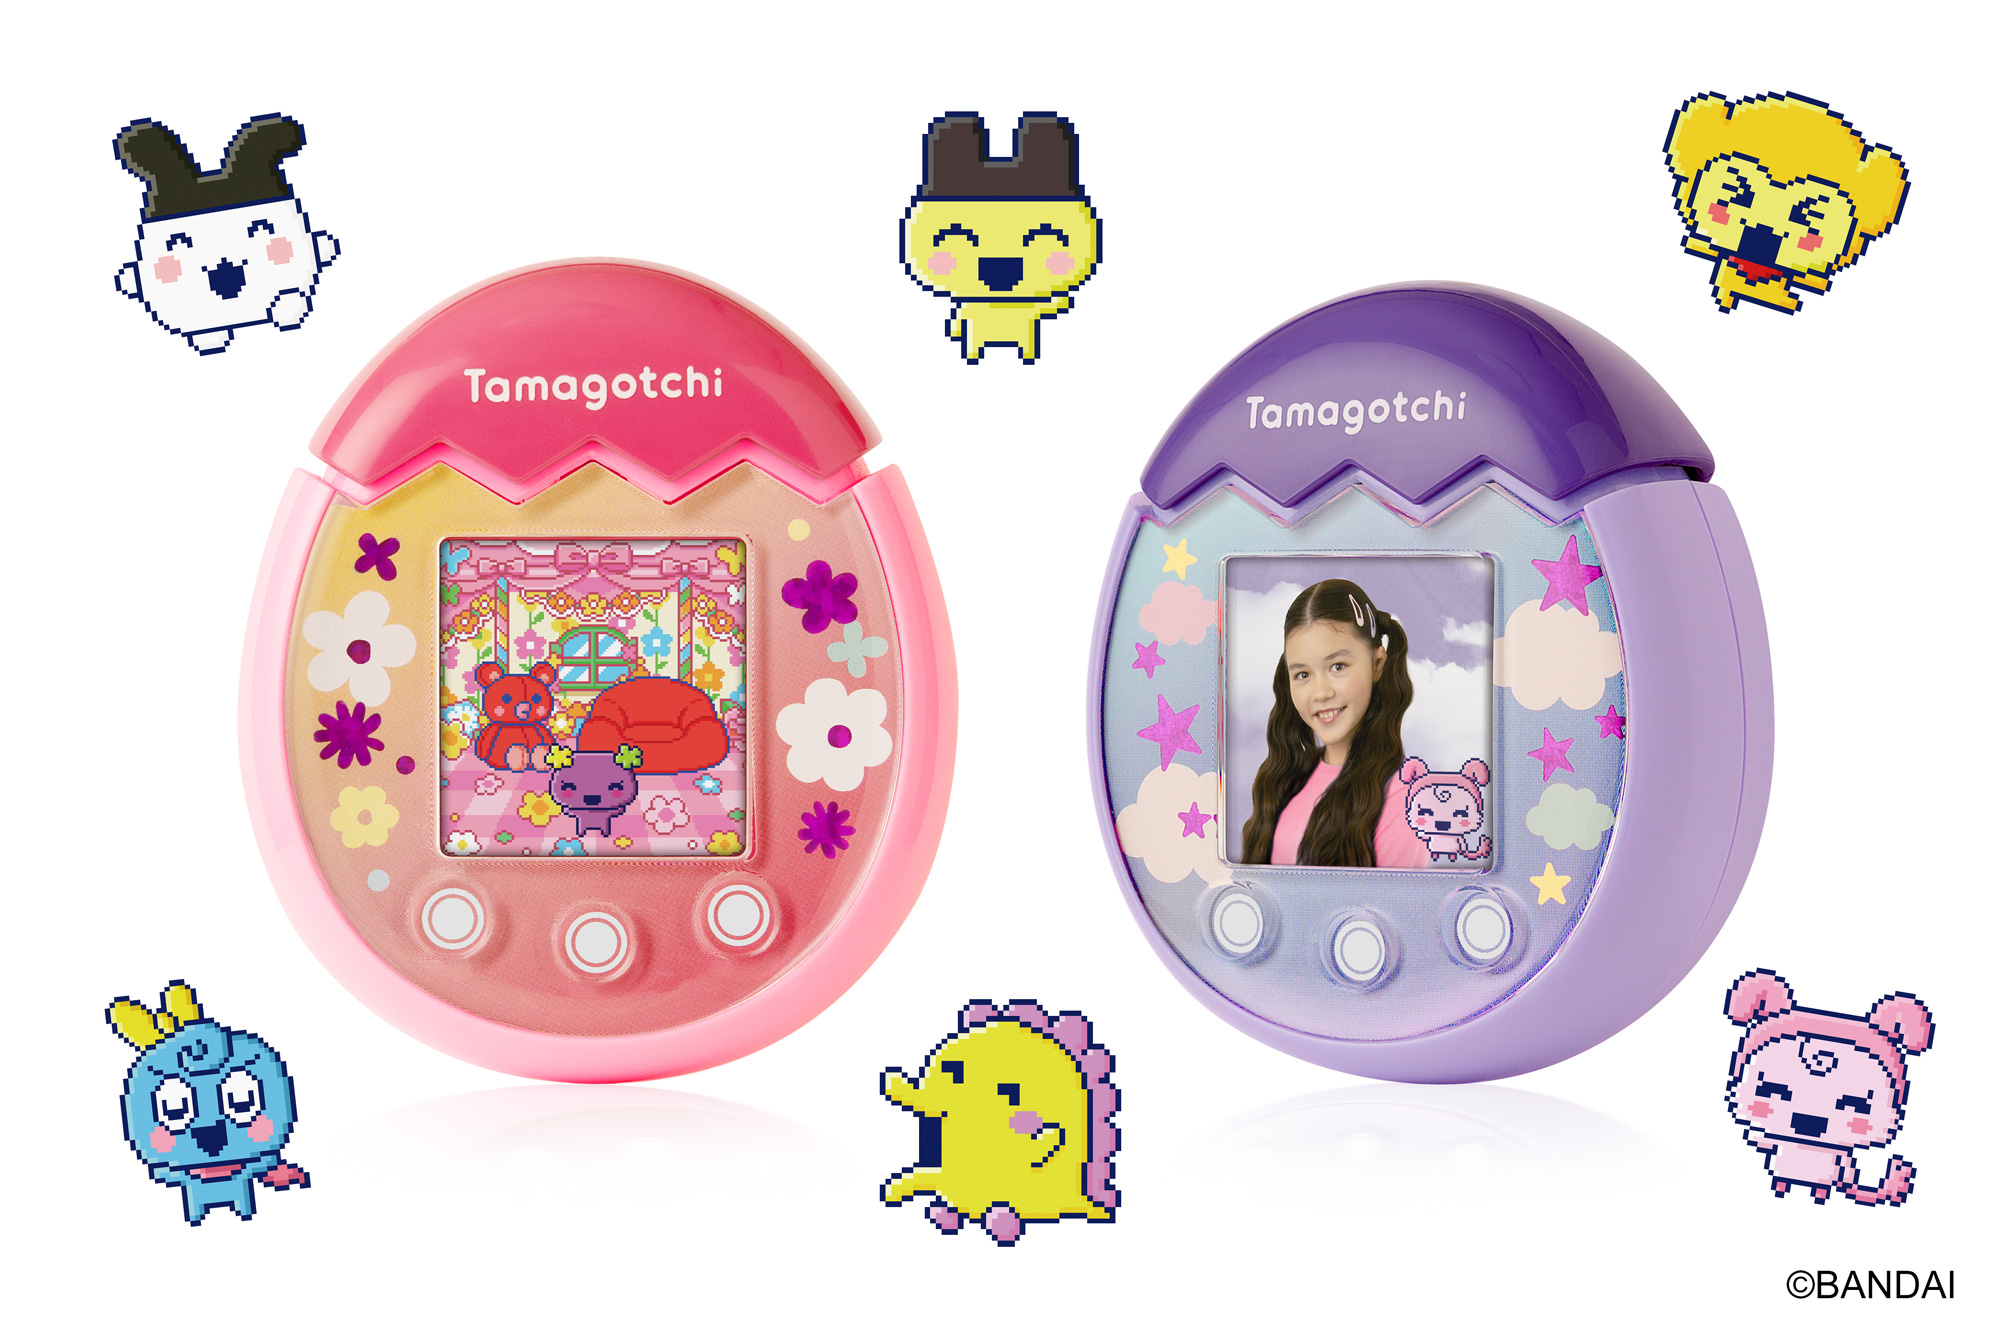 A pink Tamagotchi and a purple Tamagotchi, which are egg-shaped devices where little creatures live